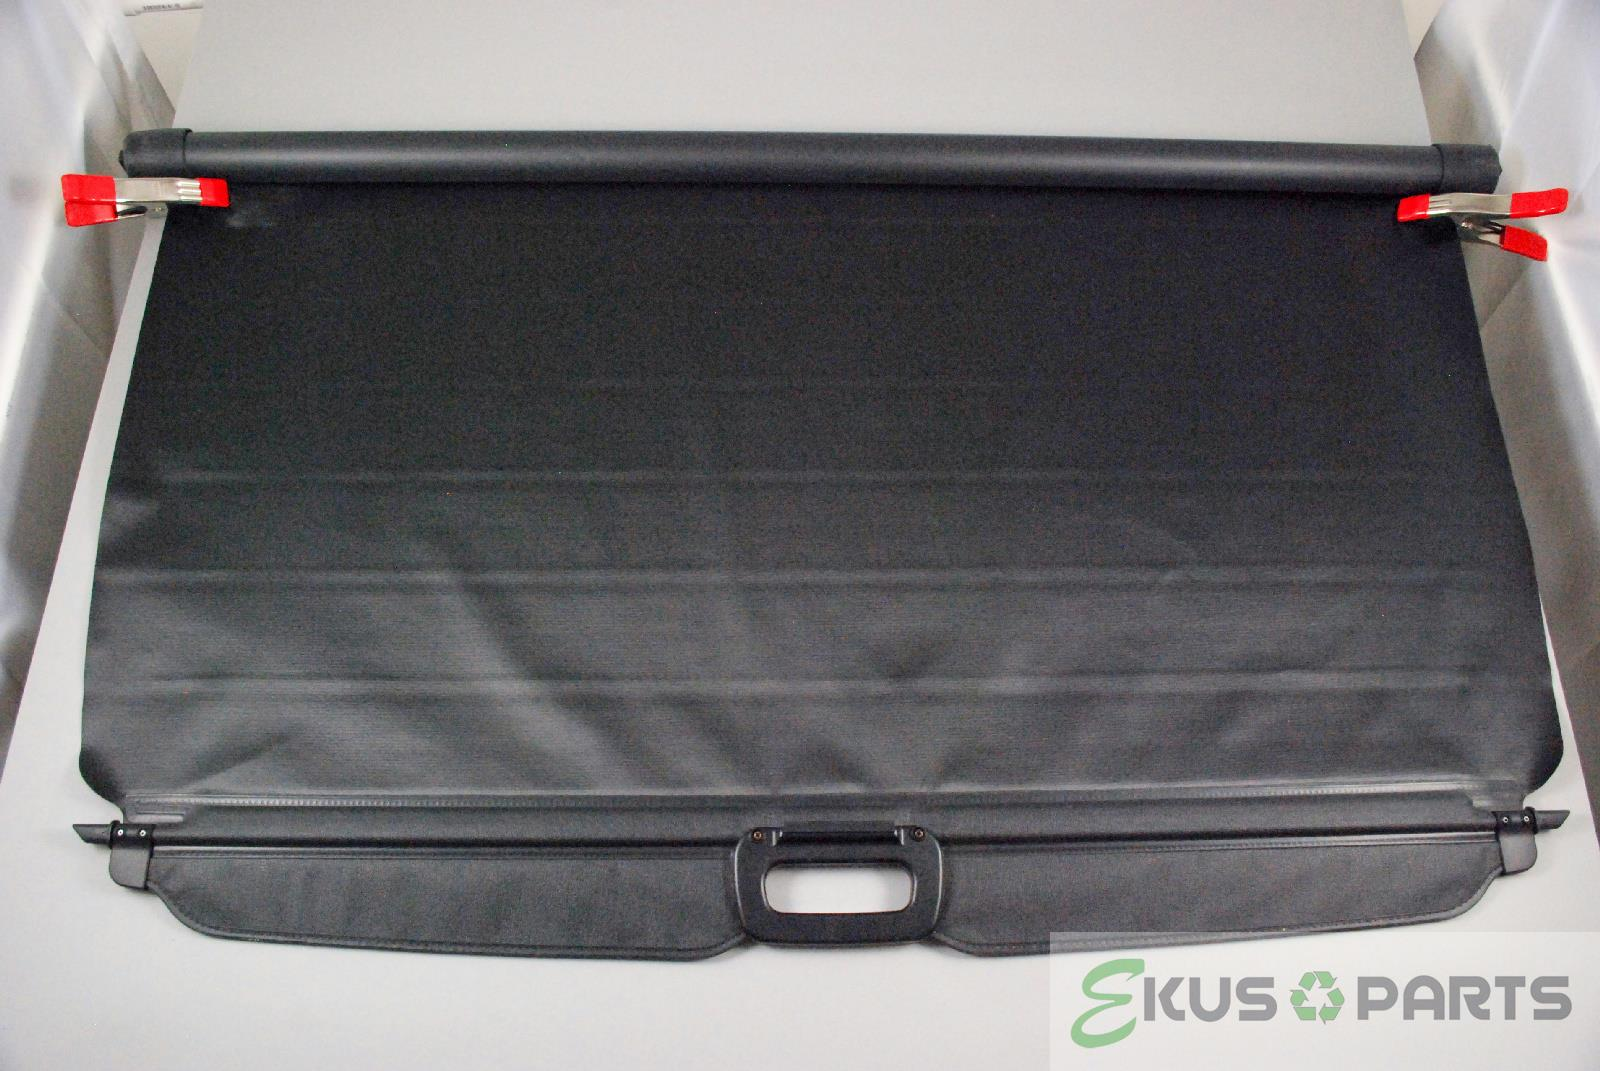 2010 jeep grand cherokee cargo cover with handle ebay. Black Bedroom Furniture Sets. Home Design Ideas